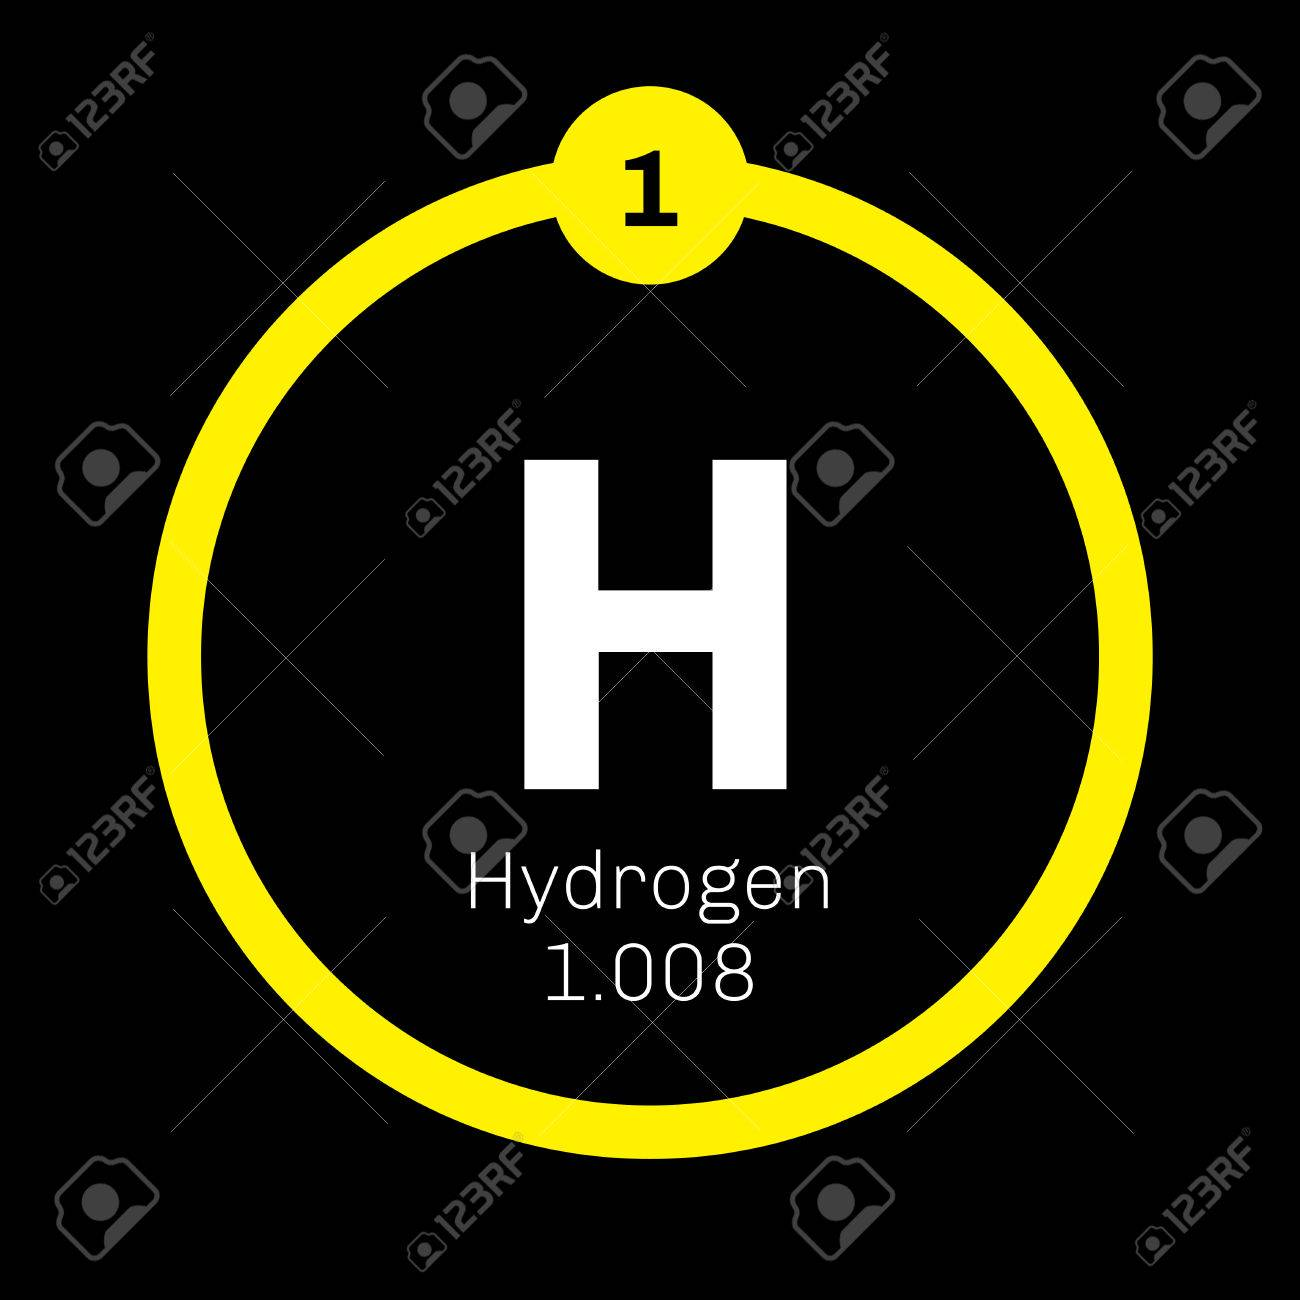 Hydrogen chemical element the lightest element on the periodic hydrogen chemical element the lightest element on the periodic table colored icon with atomic urtaz Choice Image